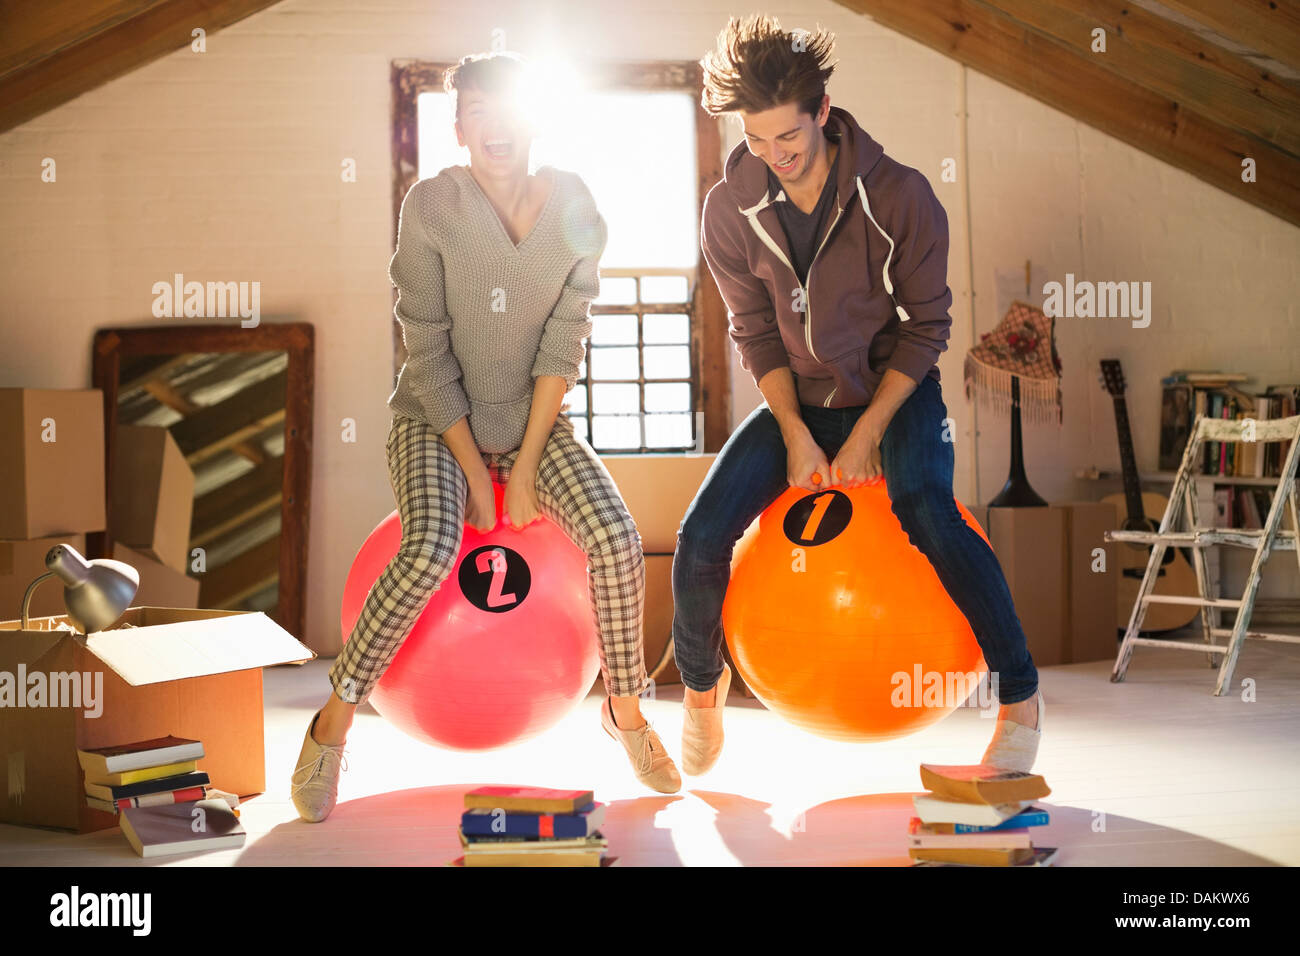 Couple jumping on exercise balls together Stock Photo